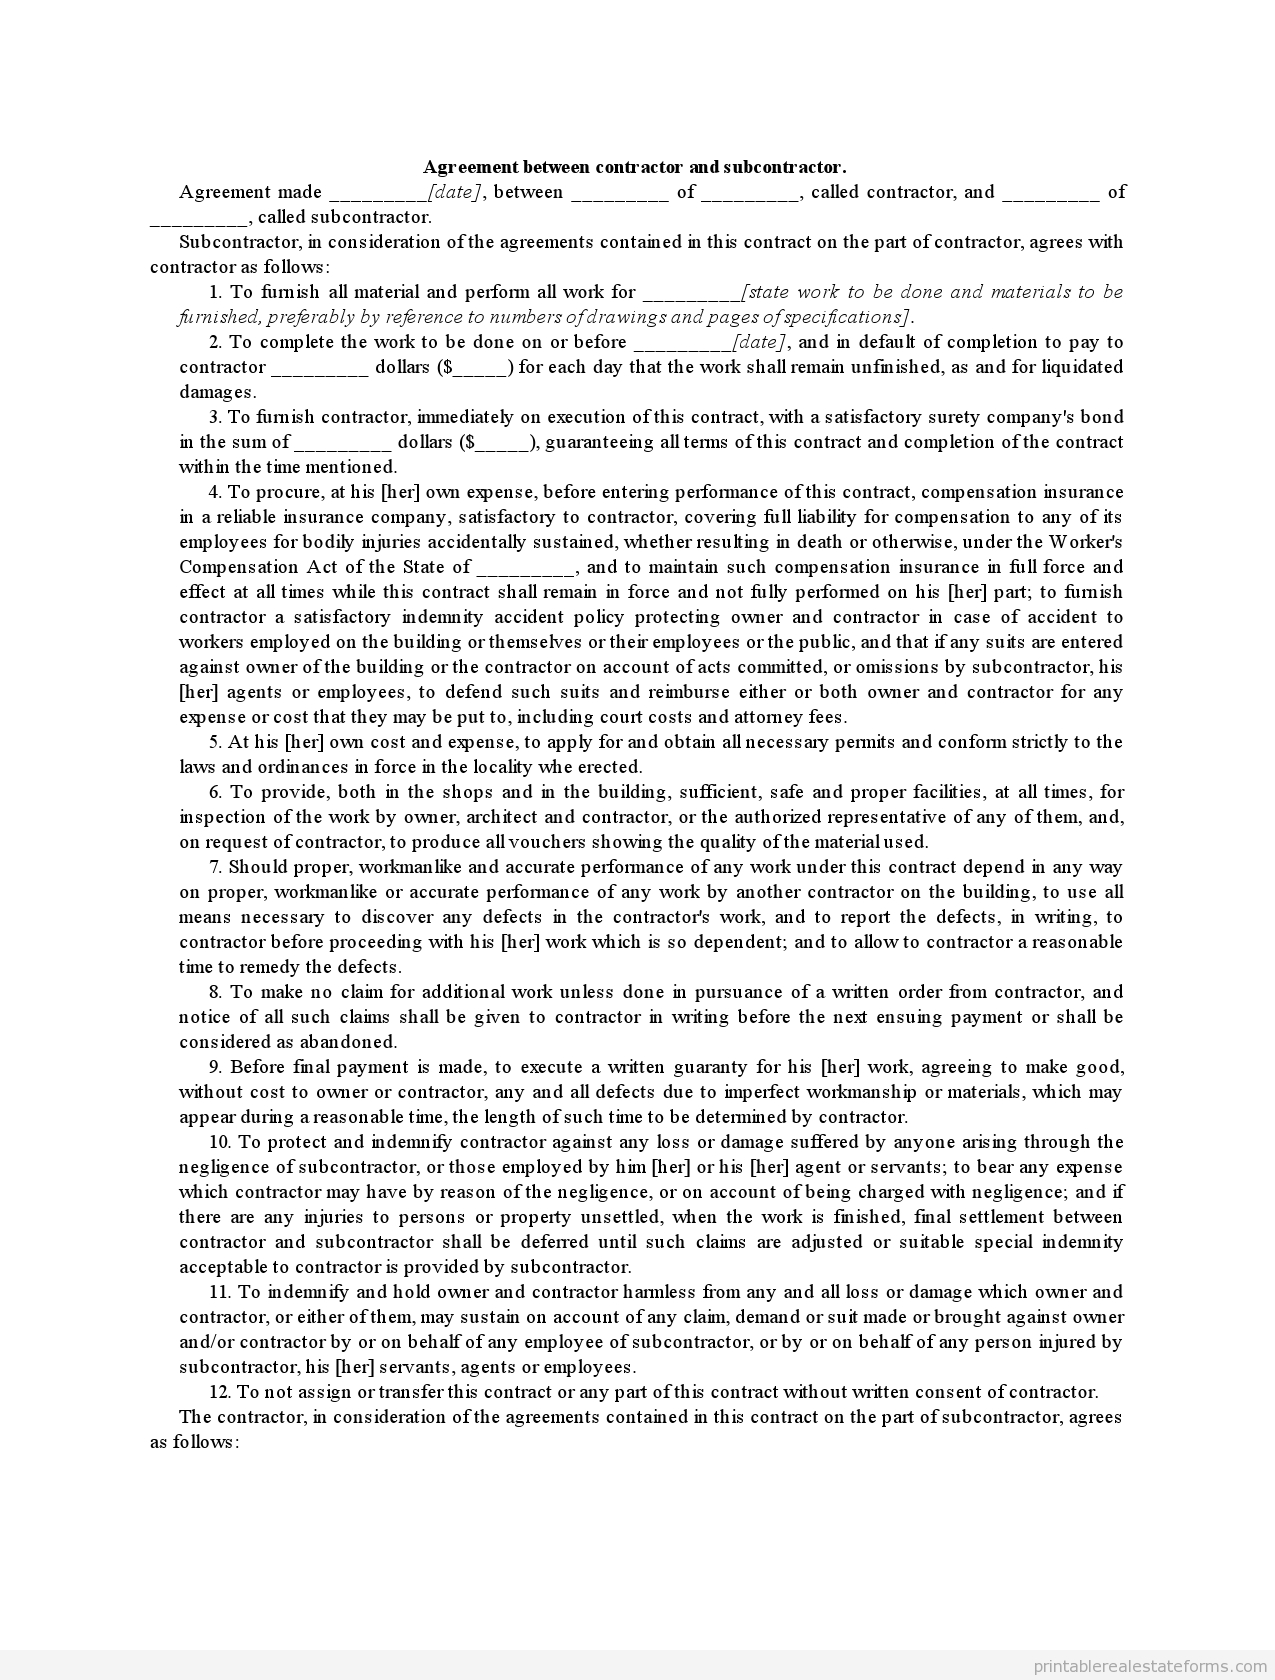 Free Printable Subcontractor Forms.contract Between Contractor And - Free Printable Subcontractor Agreement